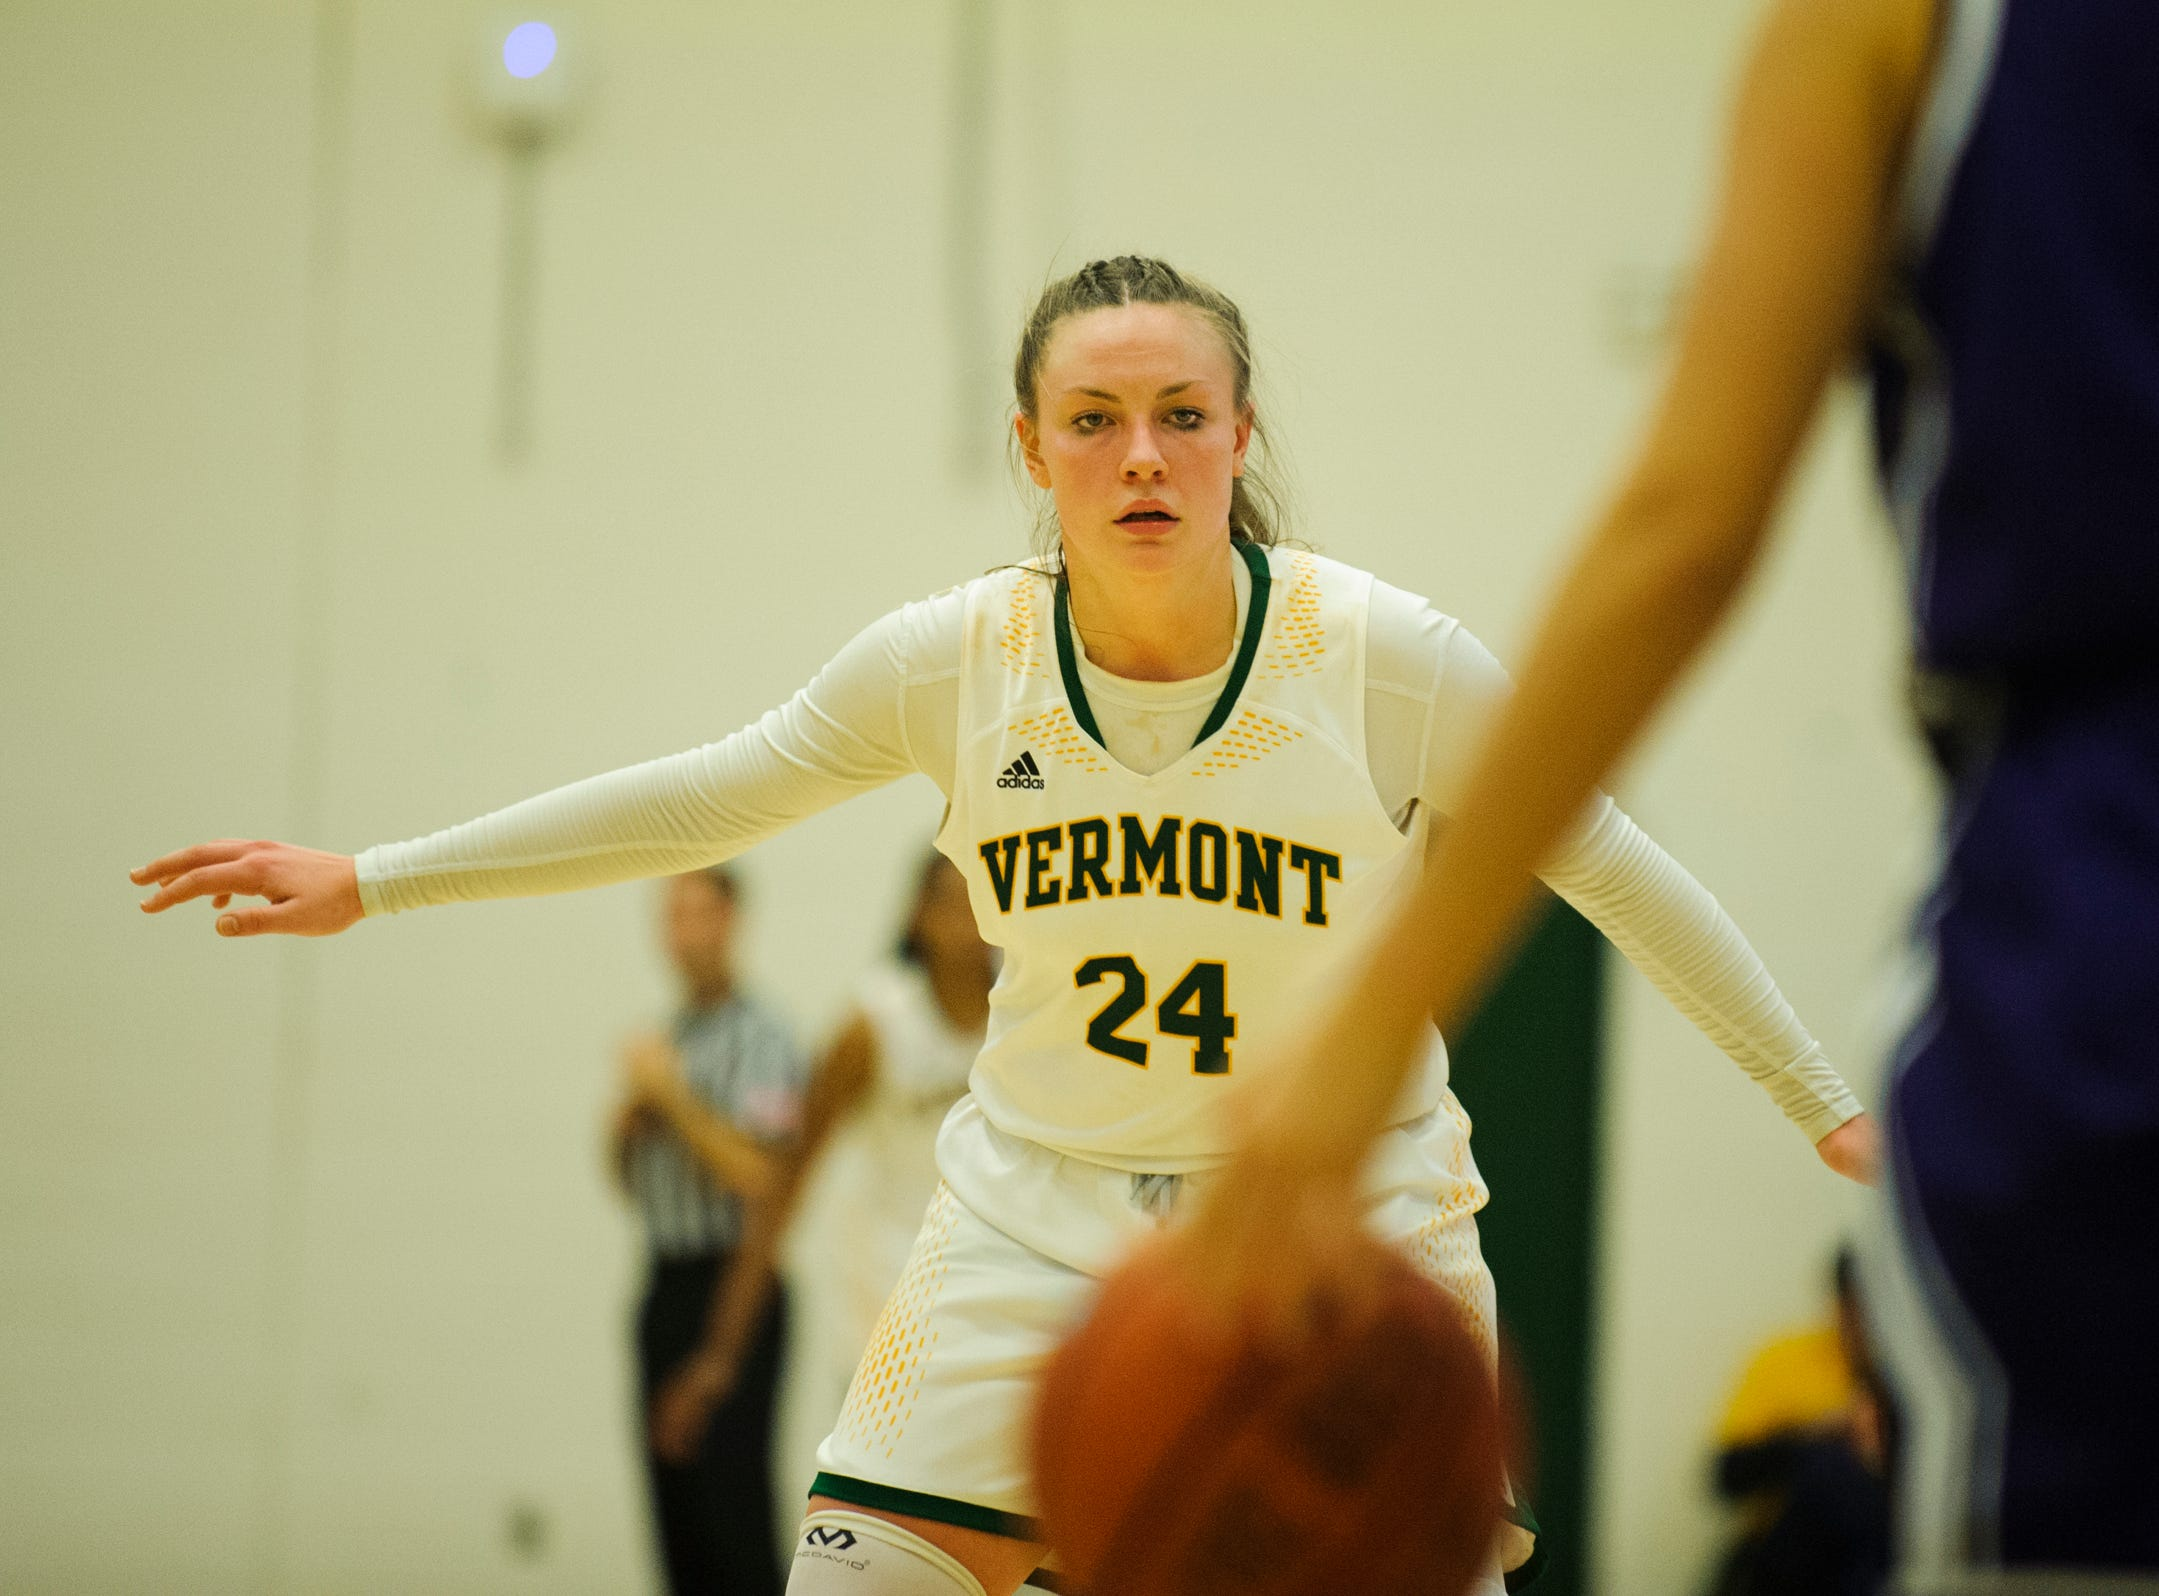 Vermont's Rose Caverly (24) keeps an eye on the ball during the women's basketball game between the Holy Cross Crusaders and the Vermont Catamounts at Patrick Gym on Wednesday night November 28, 2018 in Burlington.